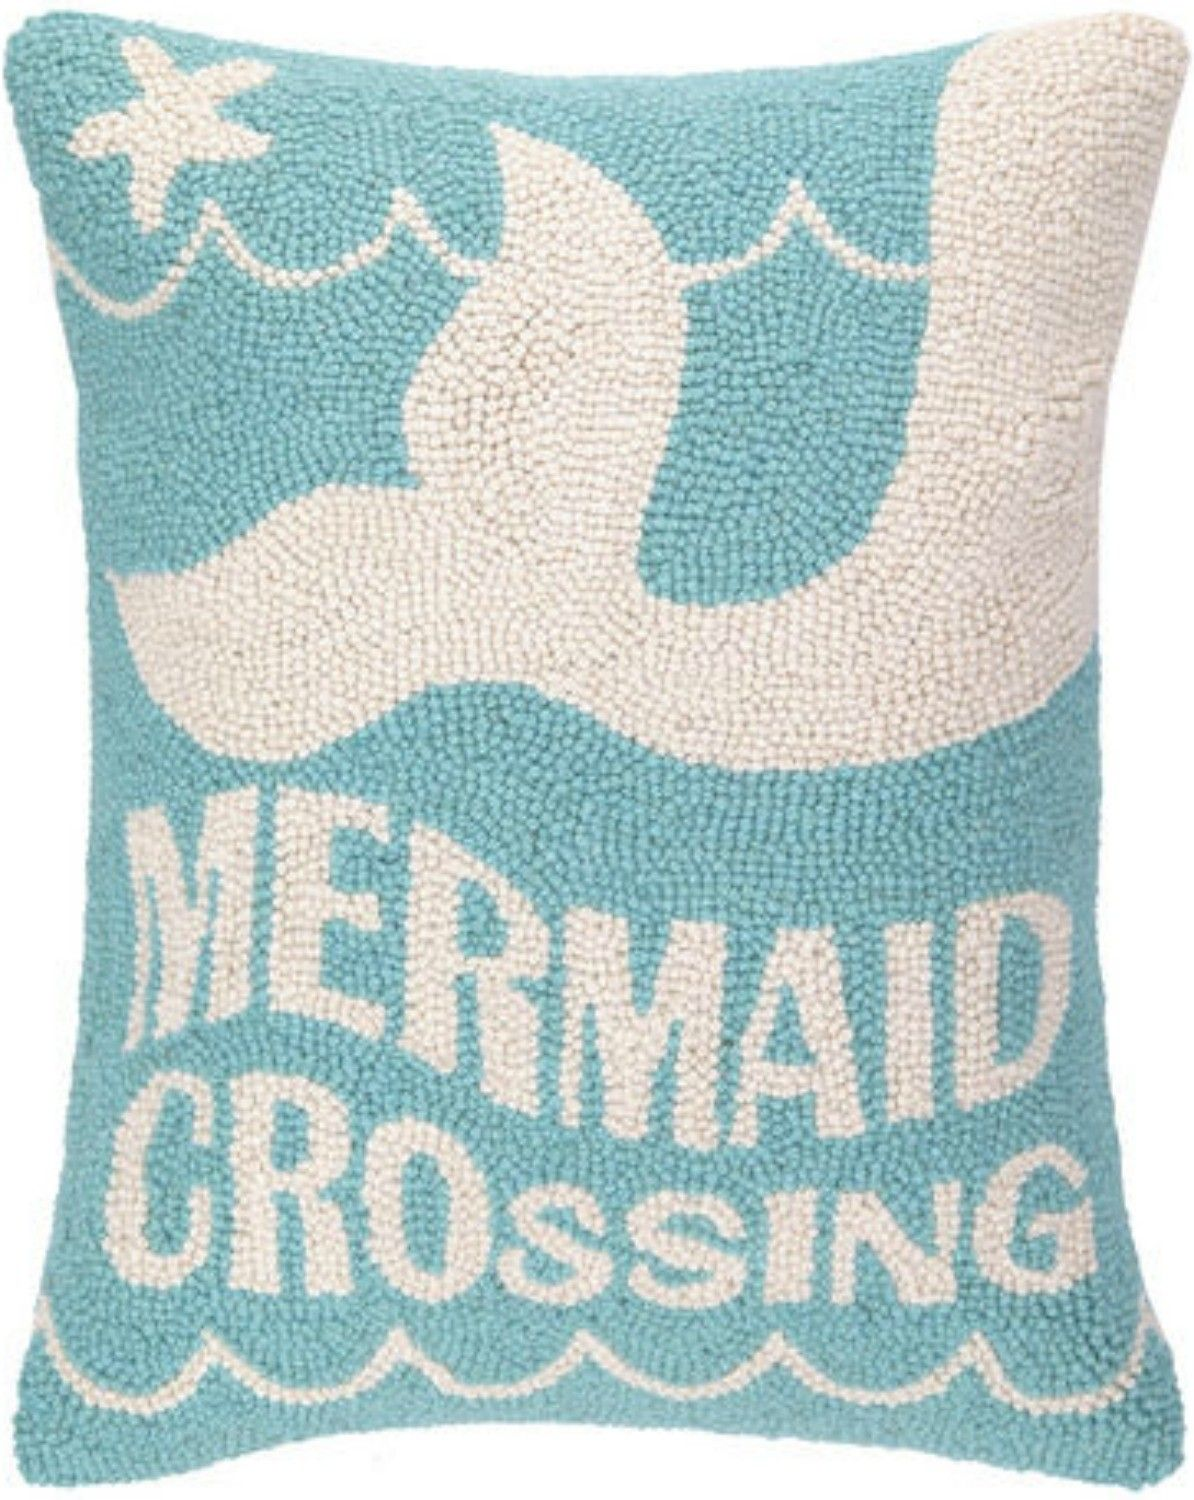 home d pillows decorative beach c decor f cf coastal cor pillow nautical